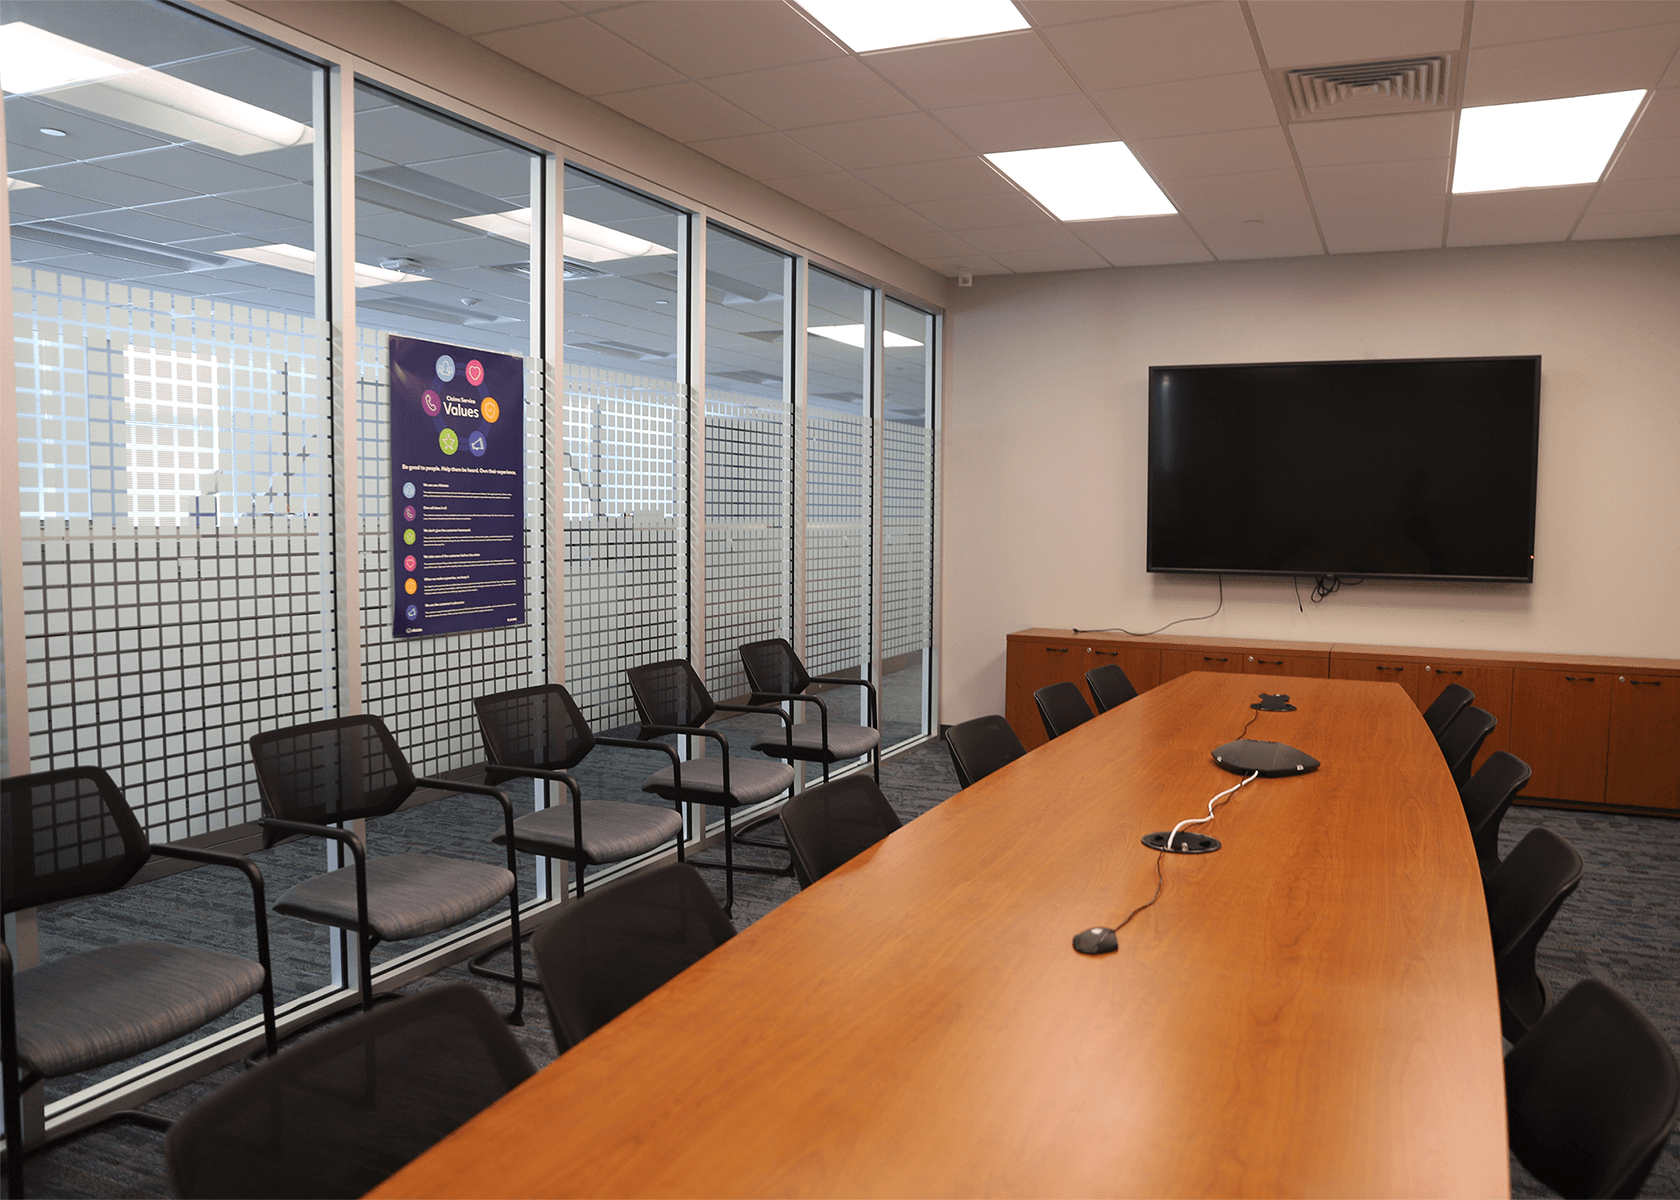 Conference room with a TV mounted on the wall, and large windows looking into open office space